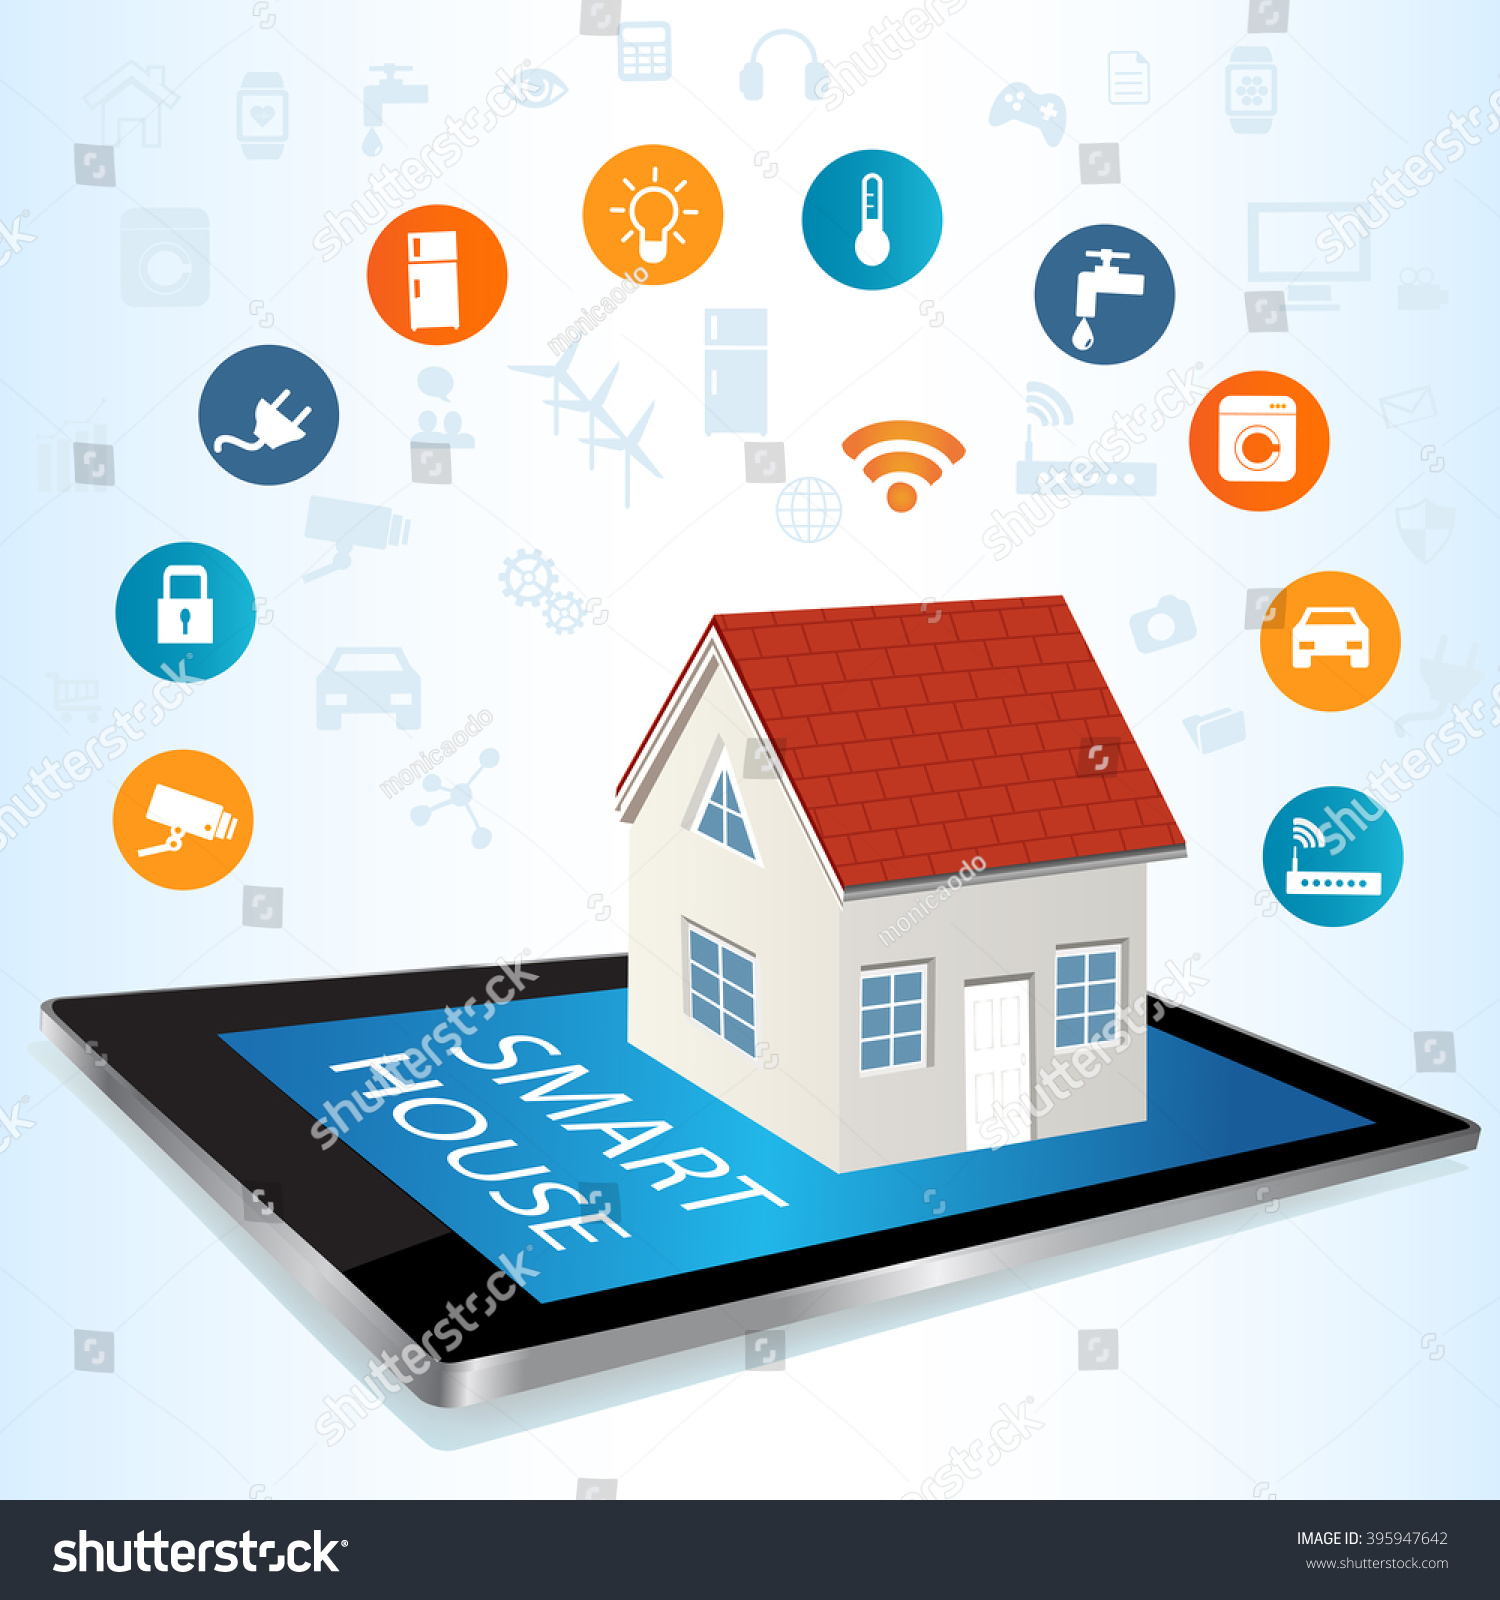 Modern digital tablet pc smart house stock vector for Internet house